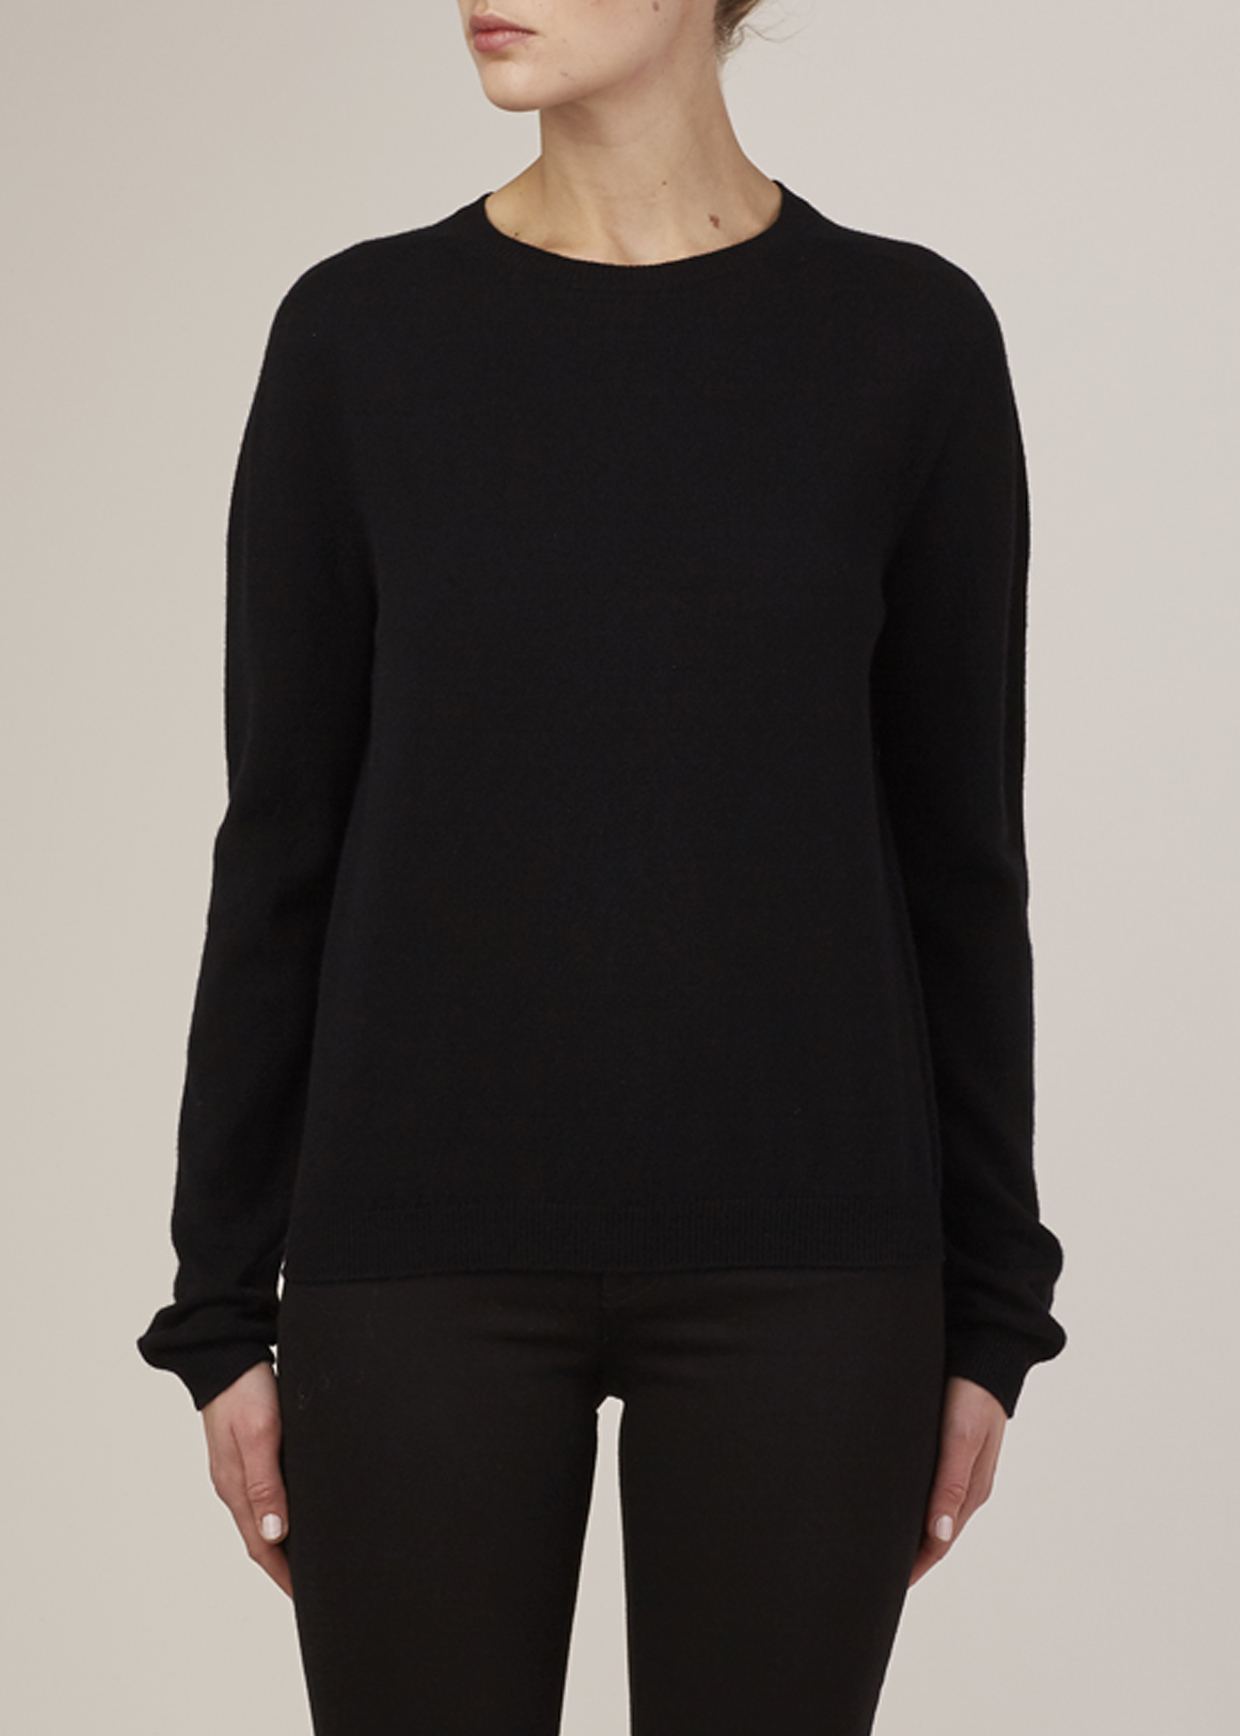 Jil sander Black Cashmere Crewneck Sweater in Black | Lyst